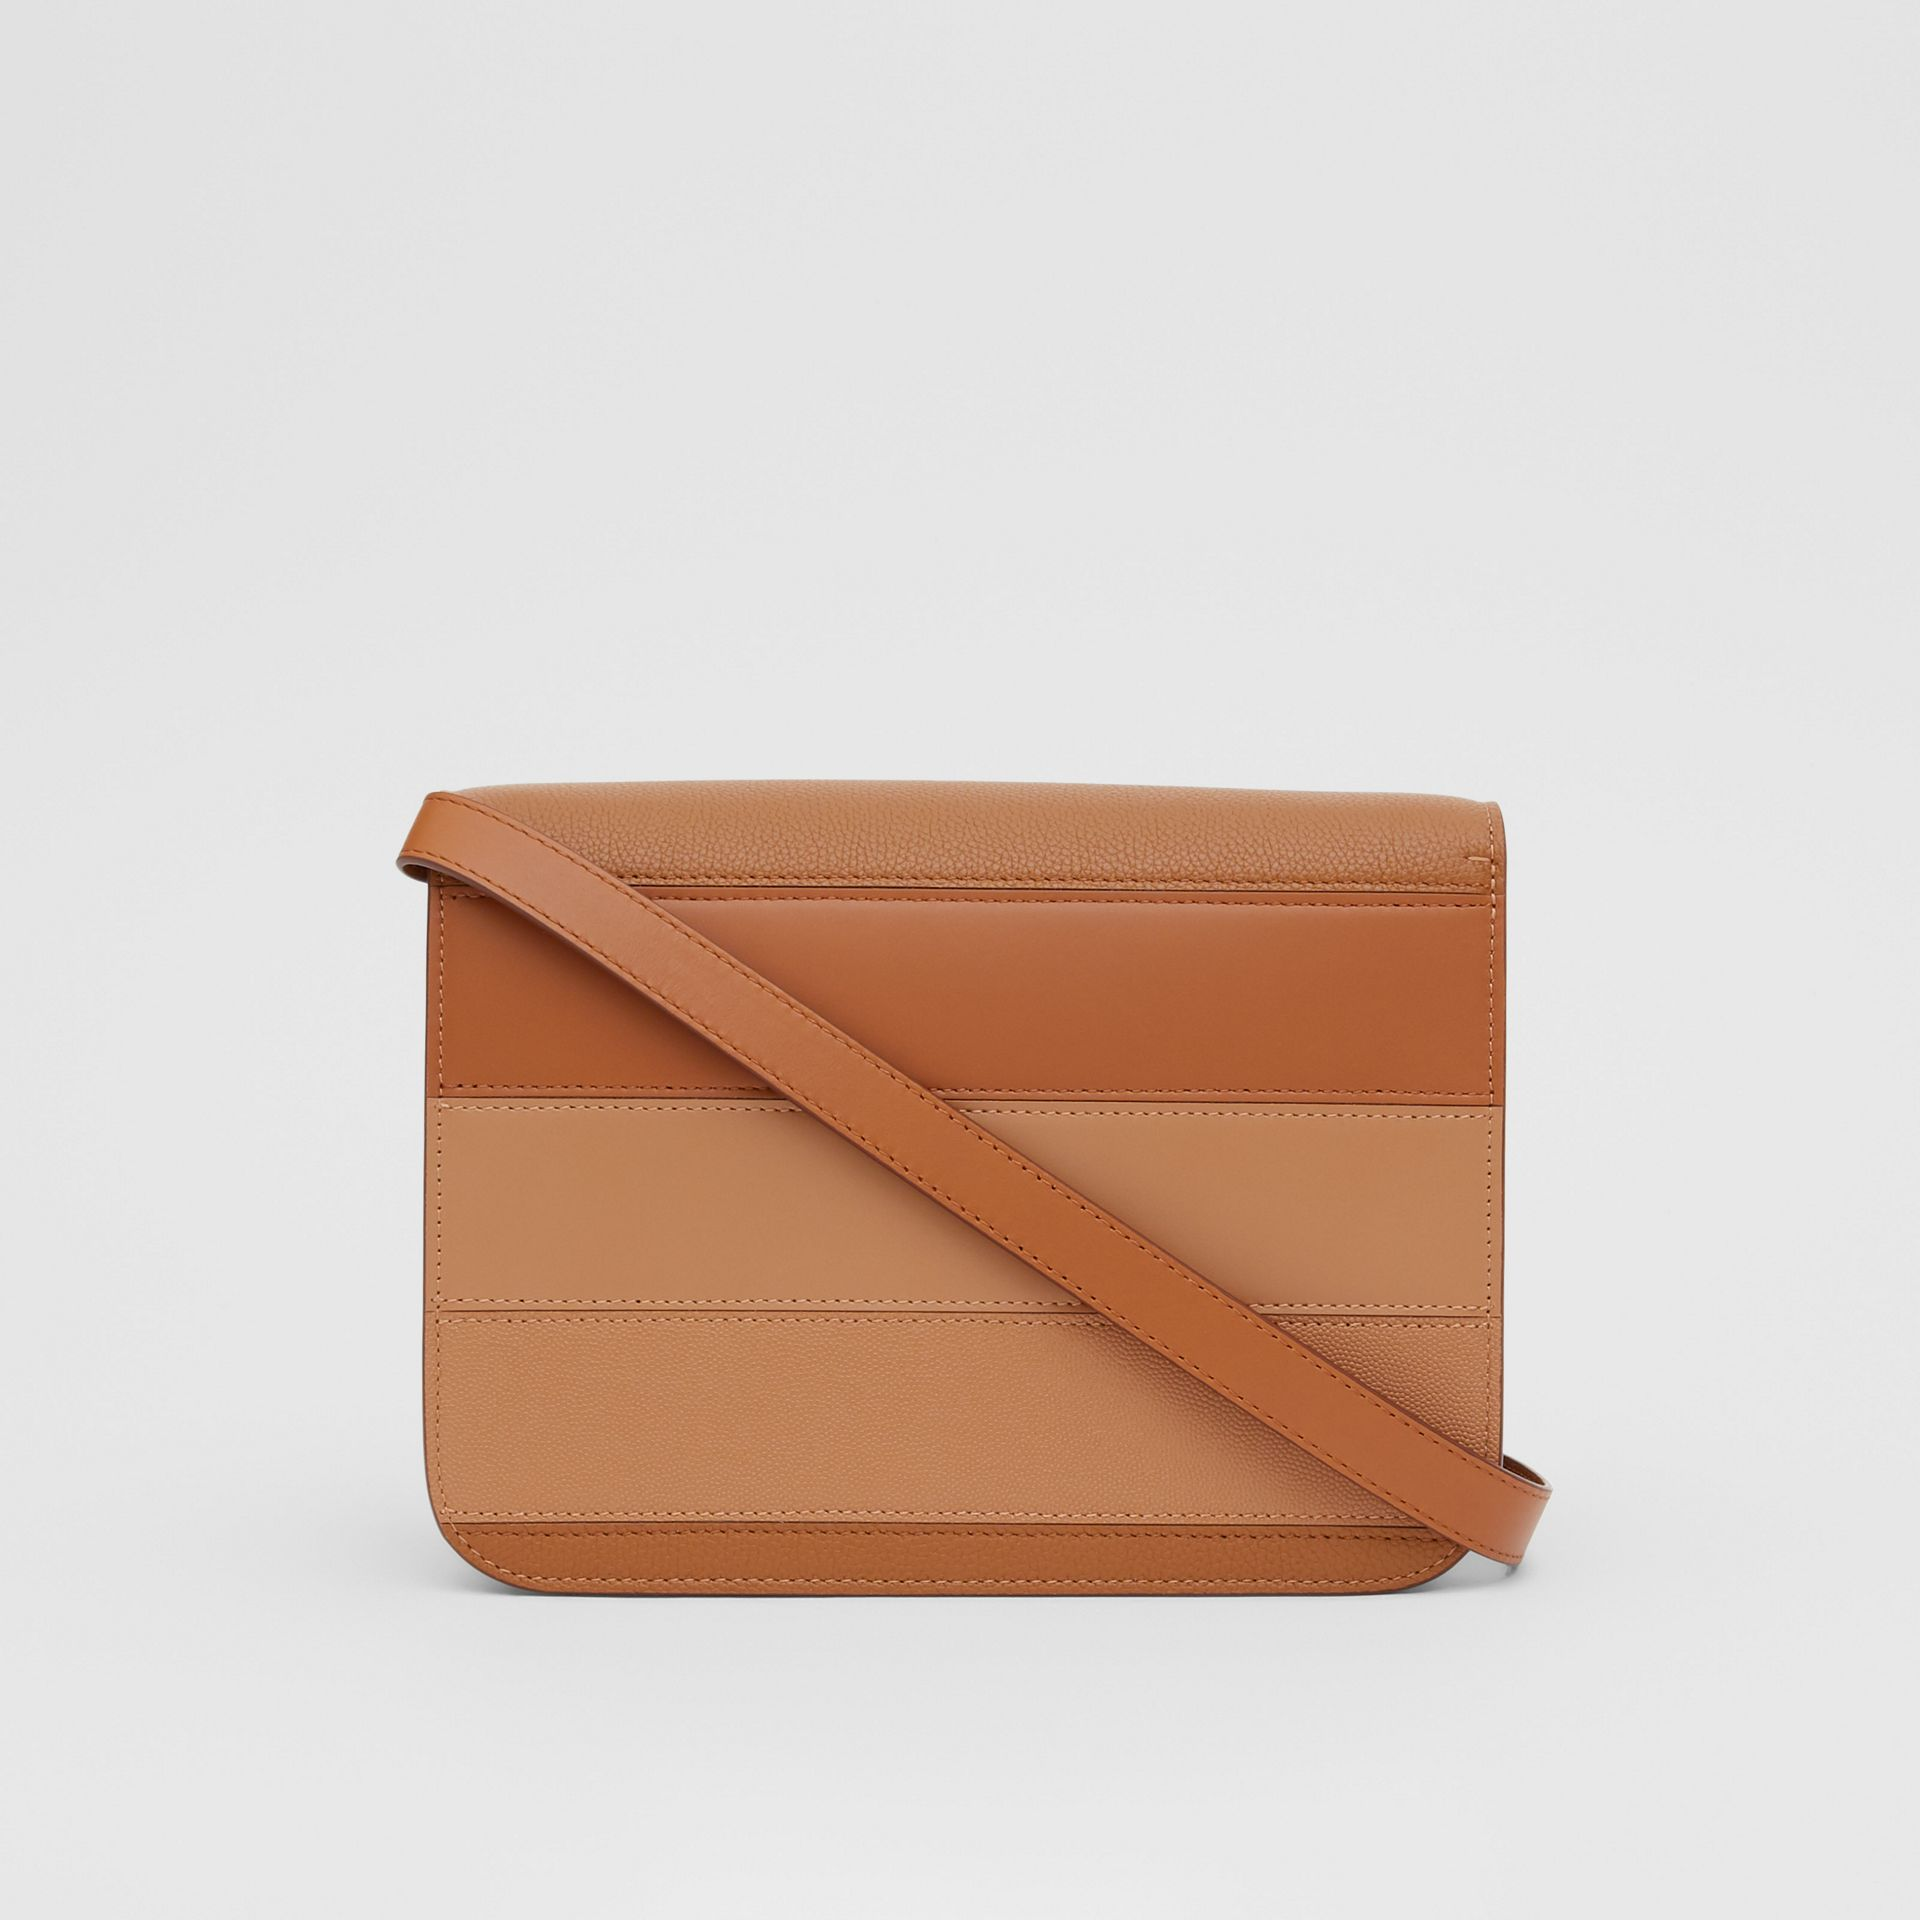 Medium Panelled Leather TB Bag in Maple - Women | Burberry - gallery image 5